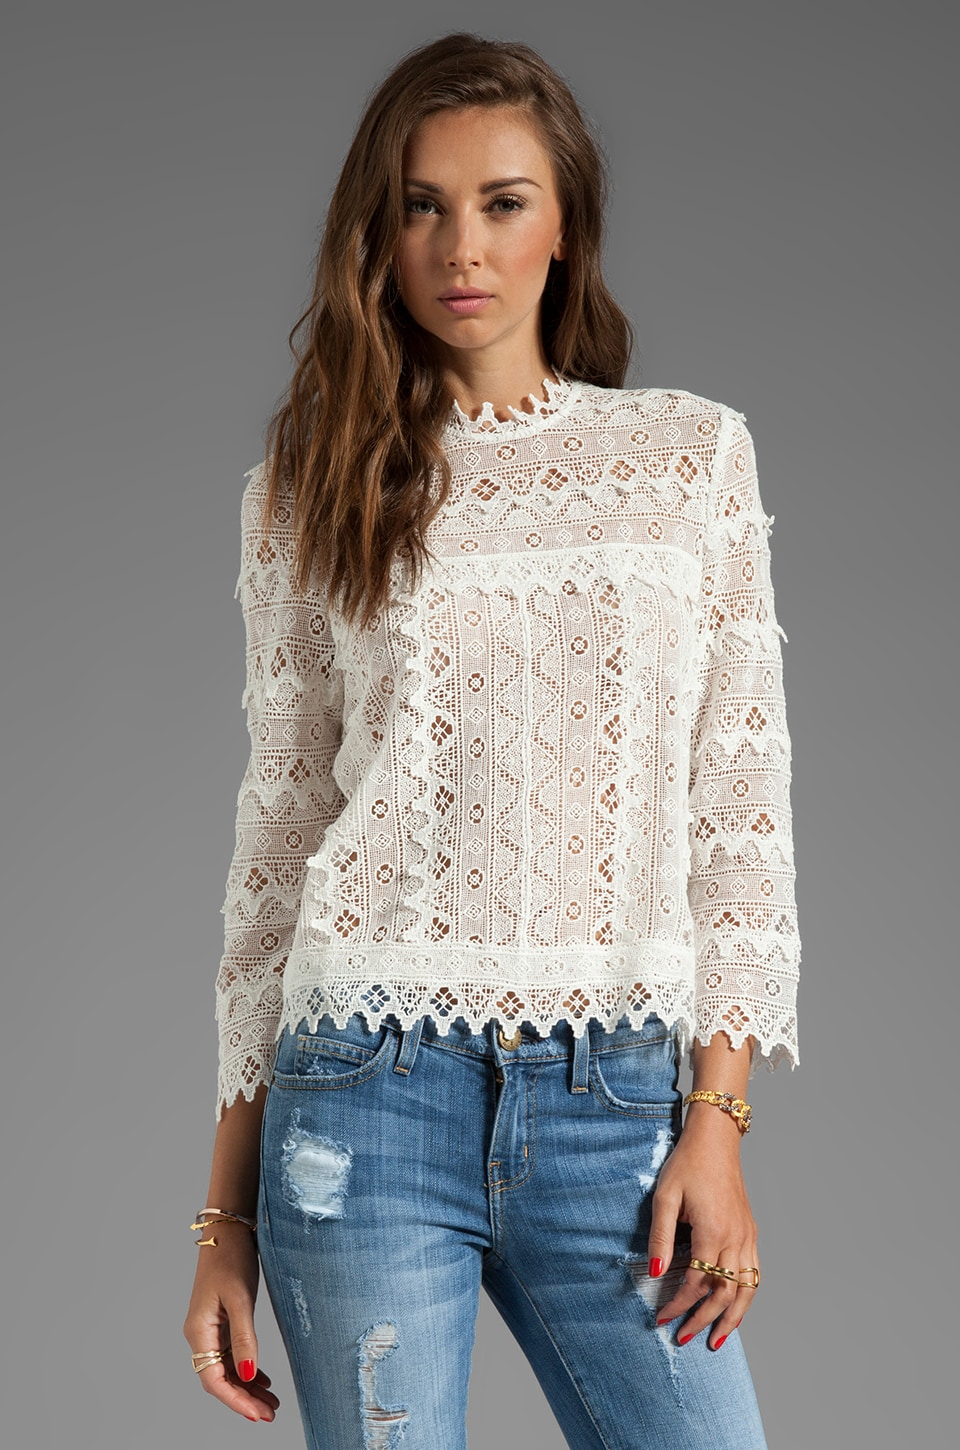 Dolce Vita Hagia Edgy Lace Top in White